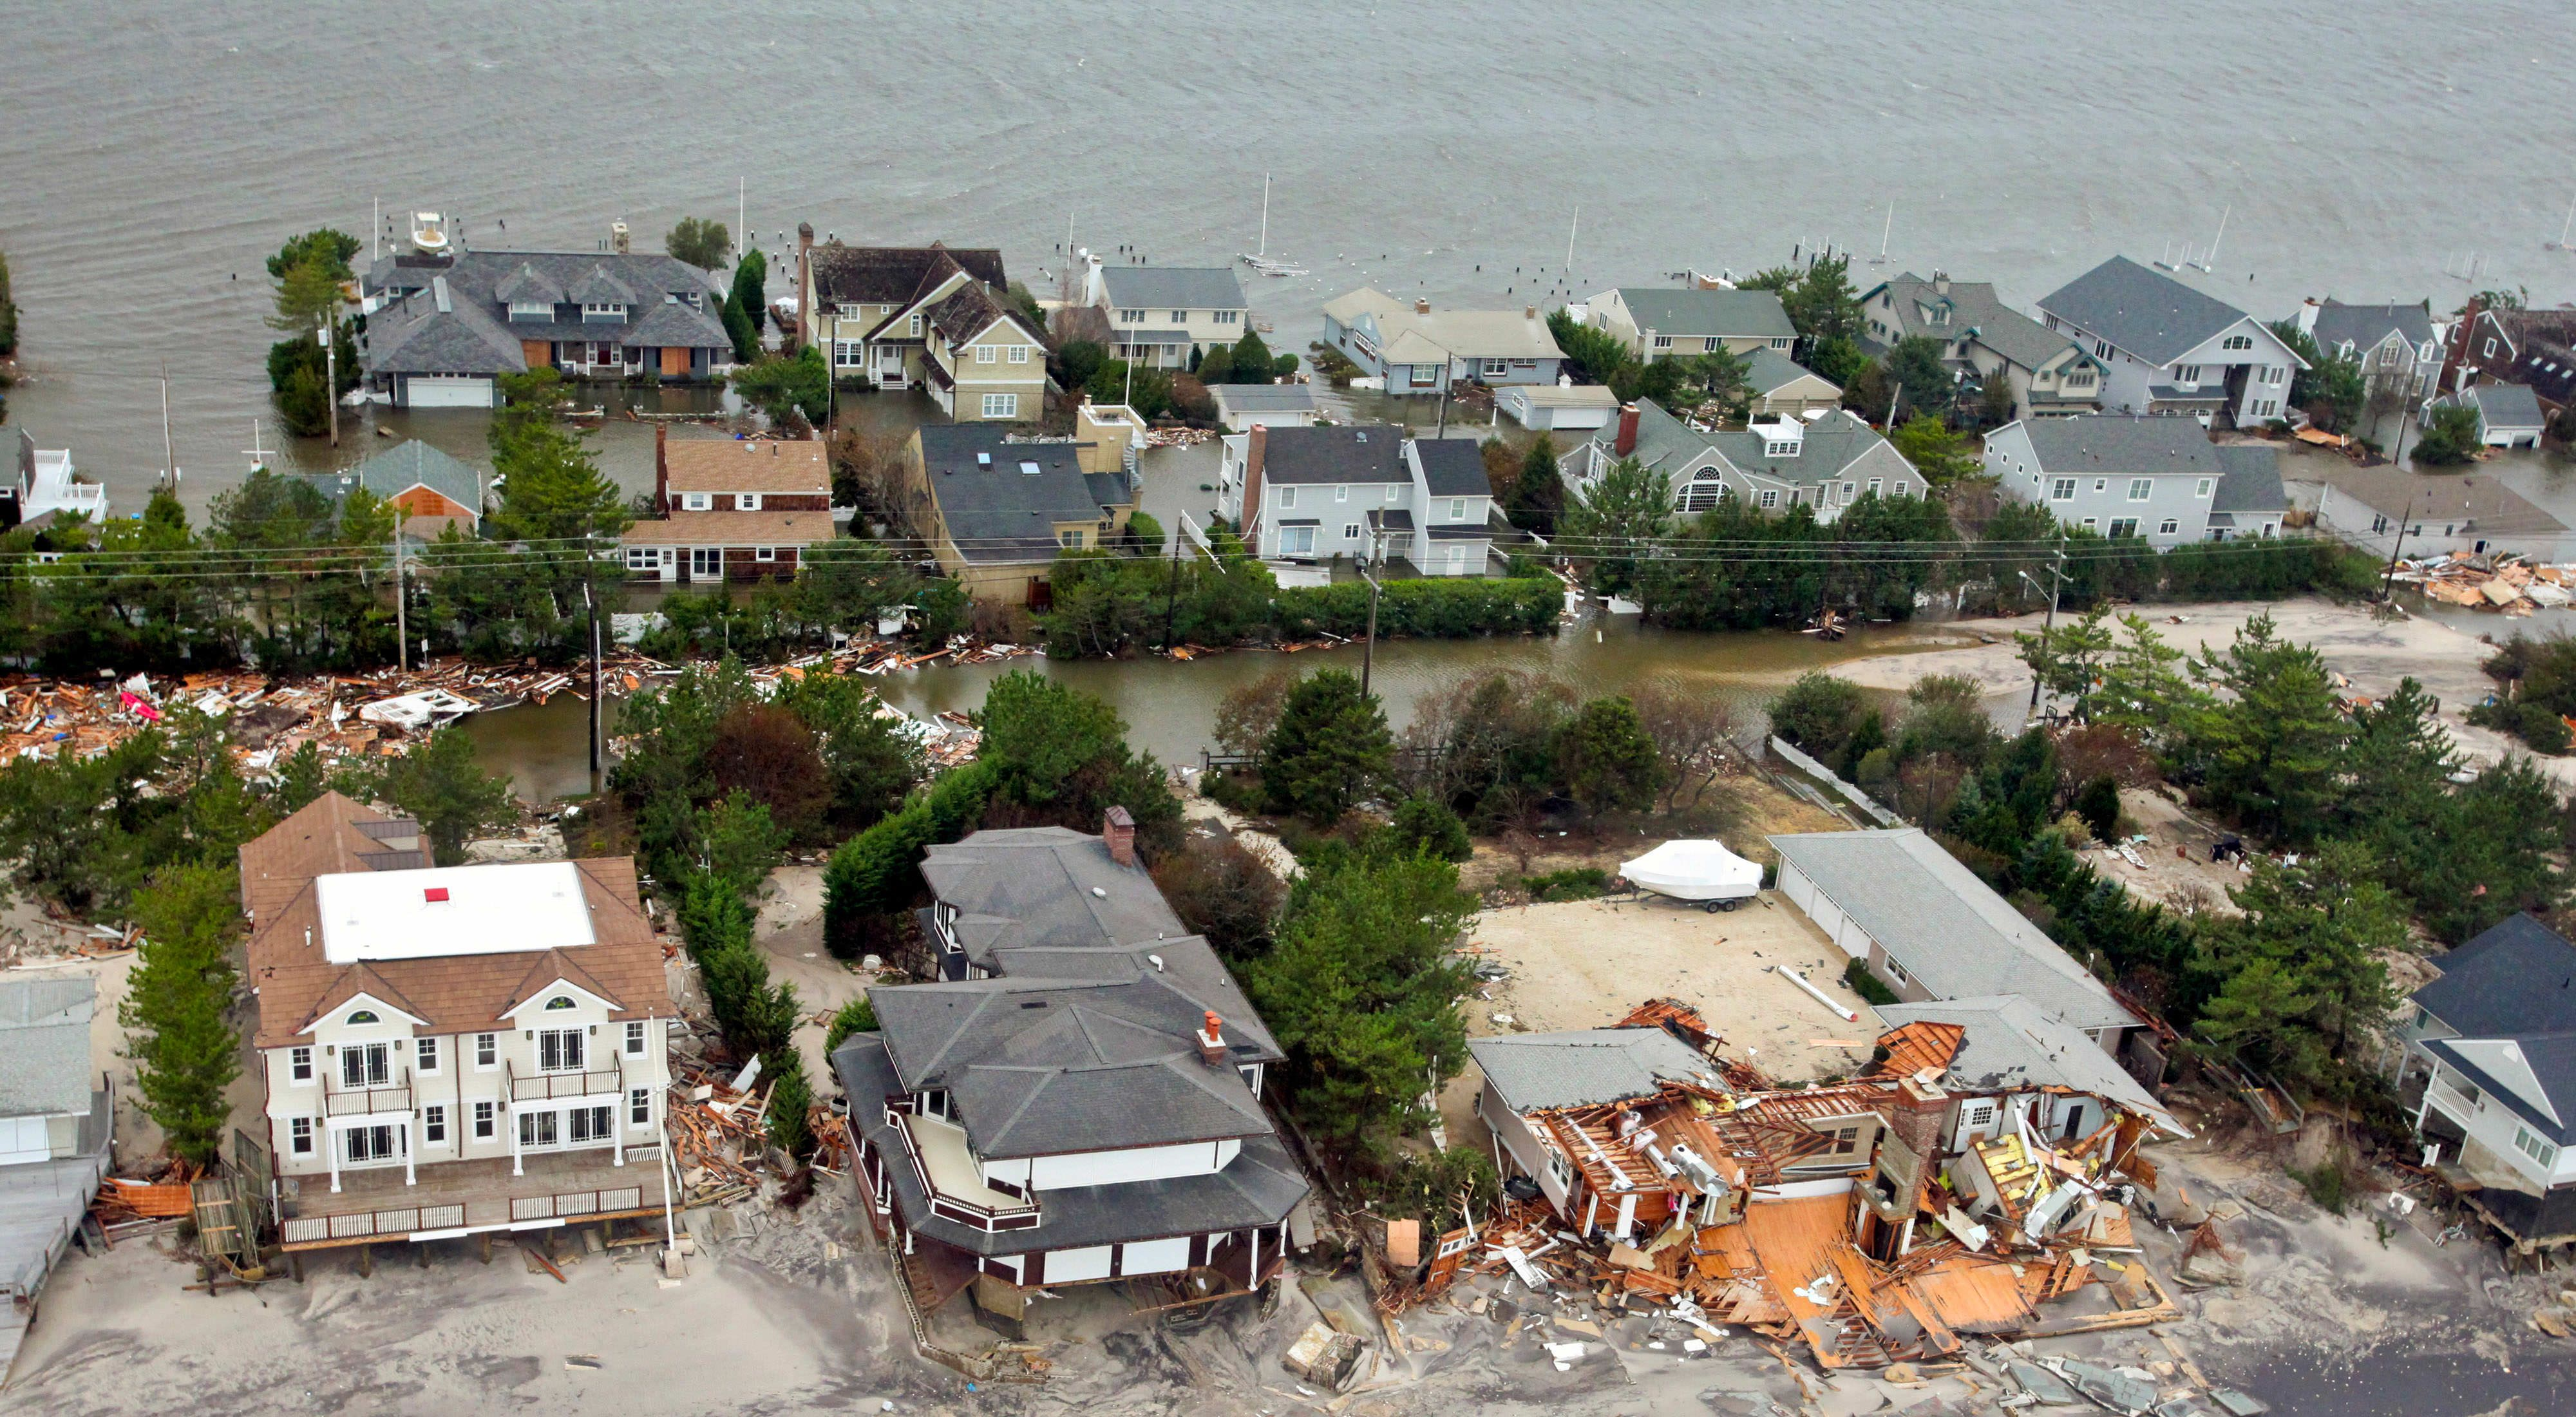 Aerial views of the damage caused by Hurricane Sandy to the New Jersey coast taken during a search and rescue mission by 1-150 Assault Helicopter Battalion, New Jersey Army National Guard, Oct. 30, 2012.